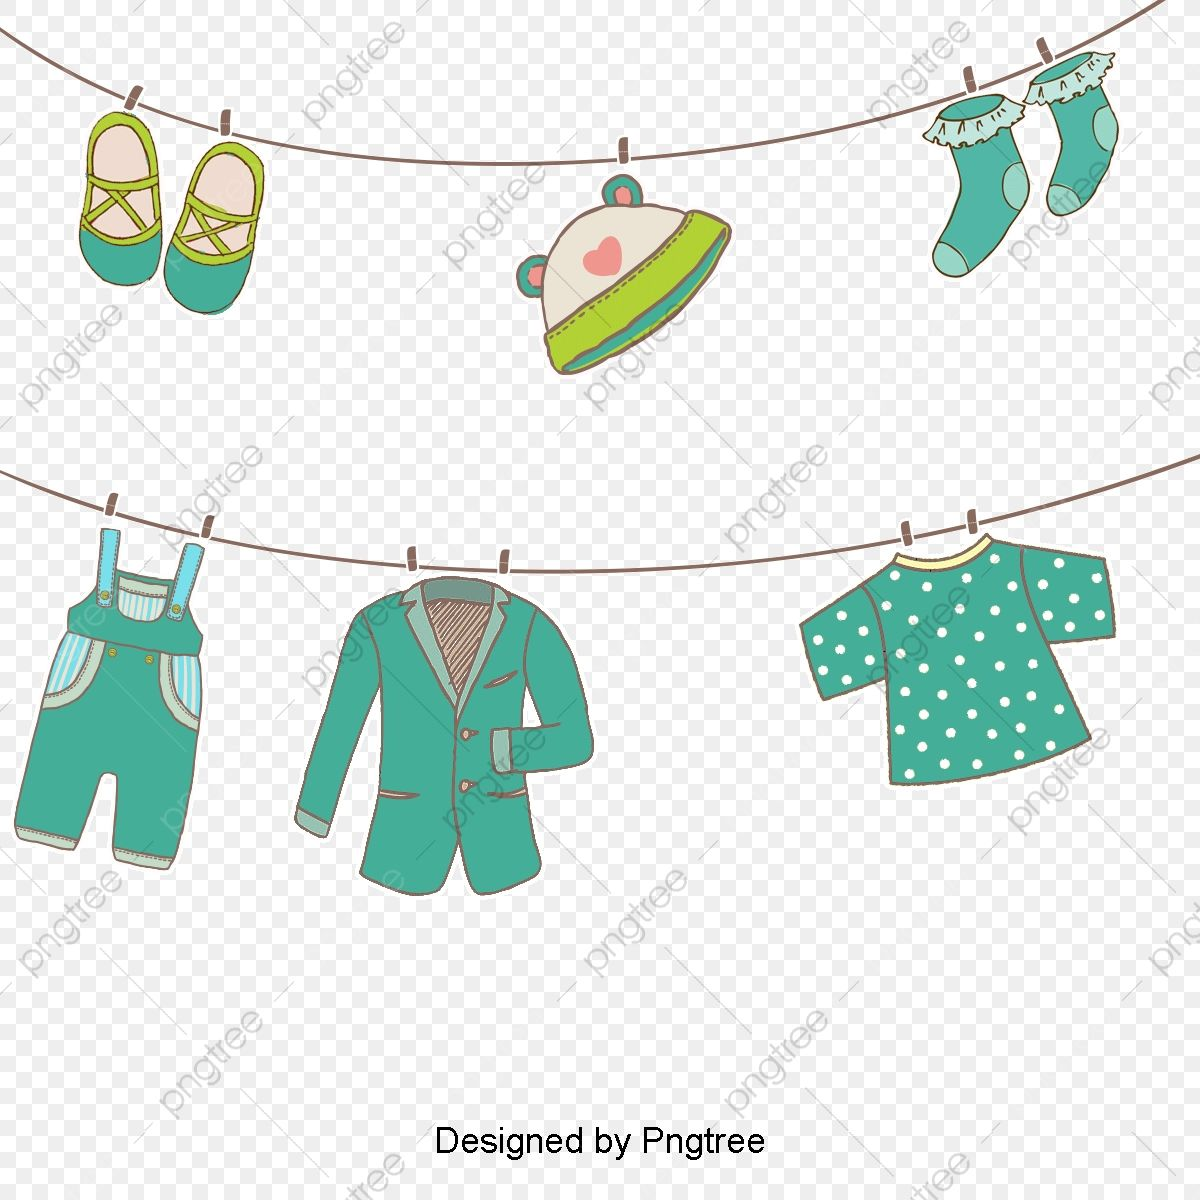 Vector Hanging Clothes, Hd, Vector, Clothing PNG